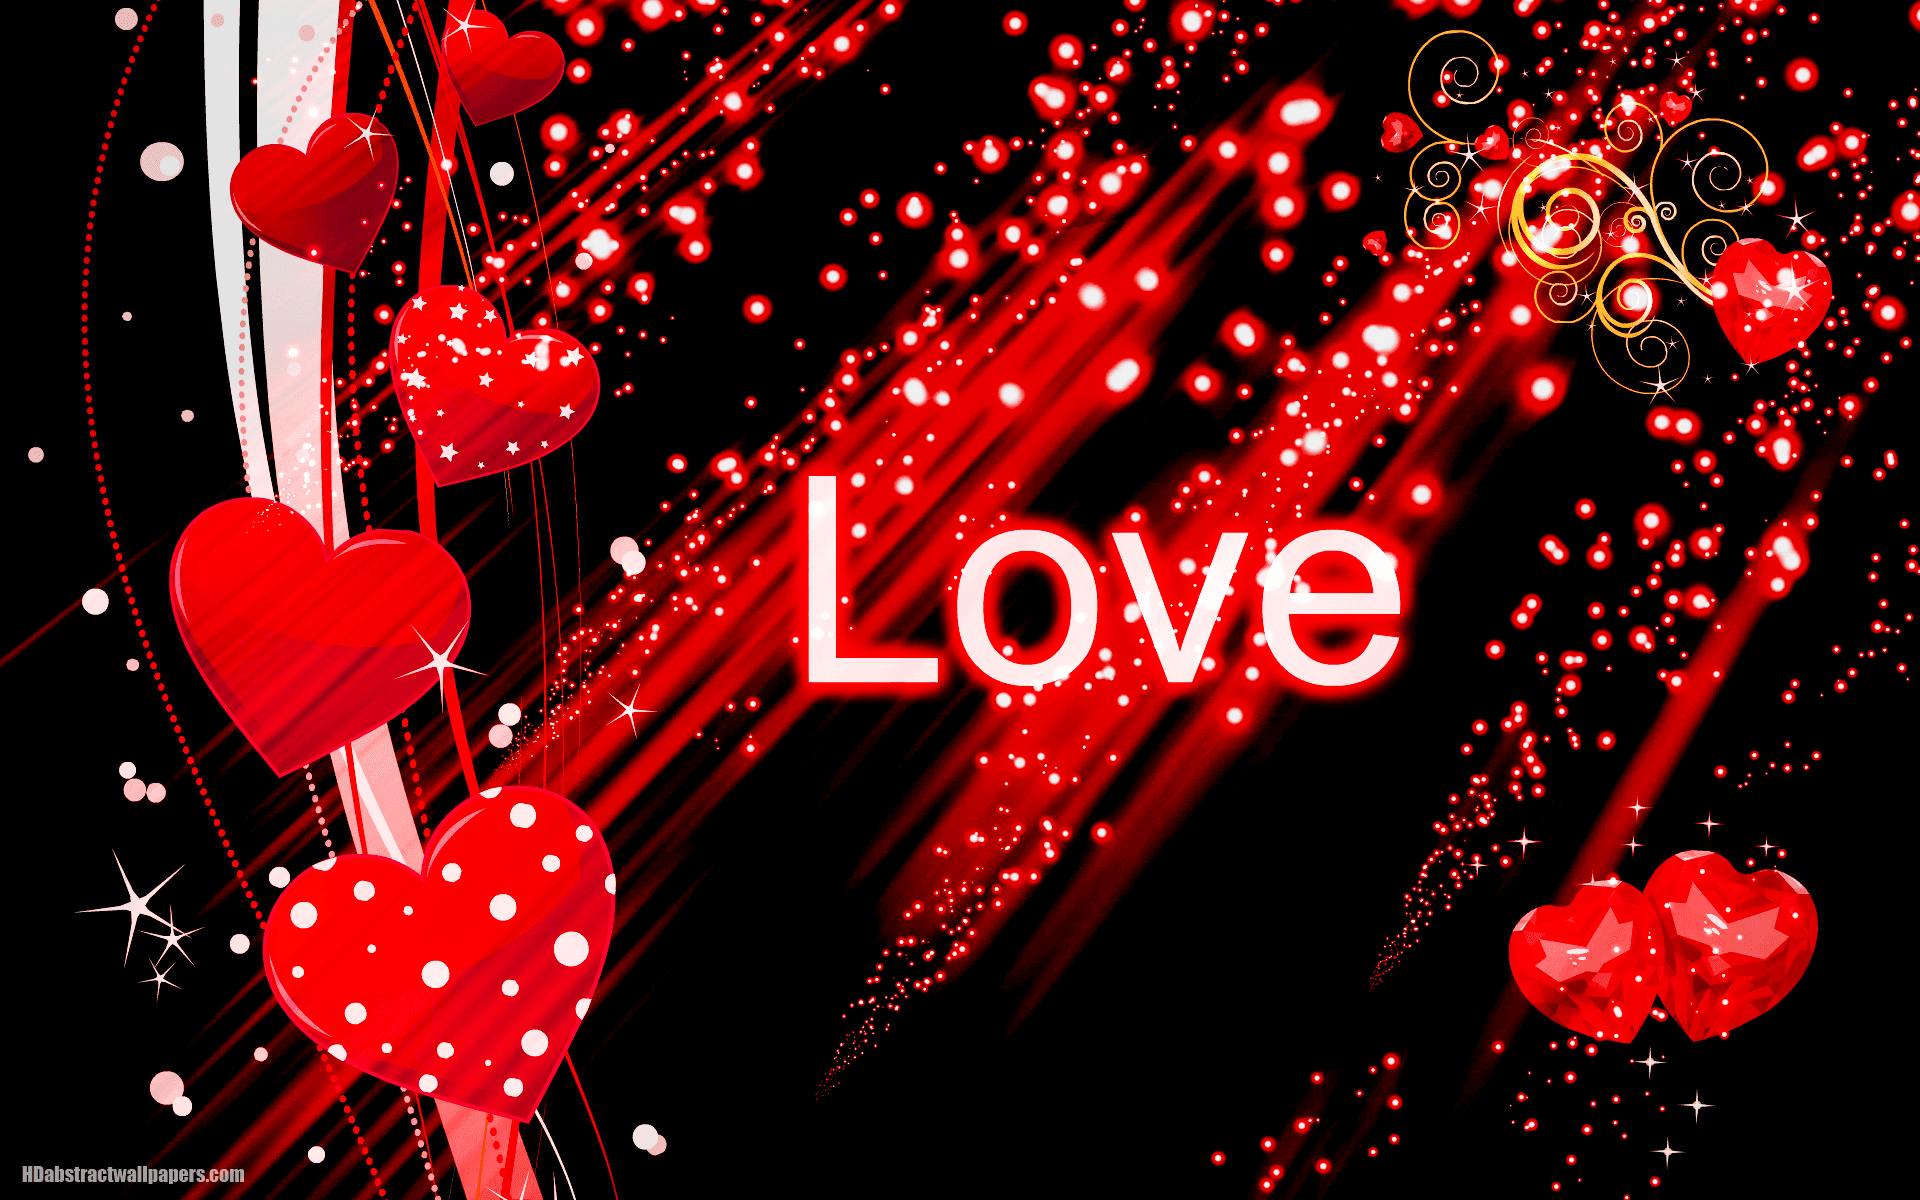 Red Love Wallpaper Hd : Black abstract wallpaper with red love hearts HD Abstract Wallpapers